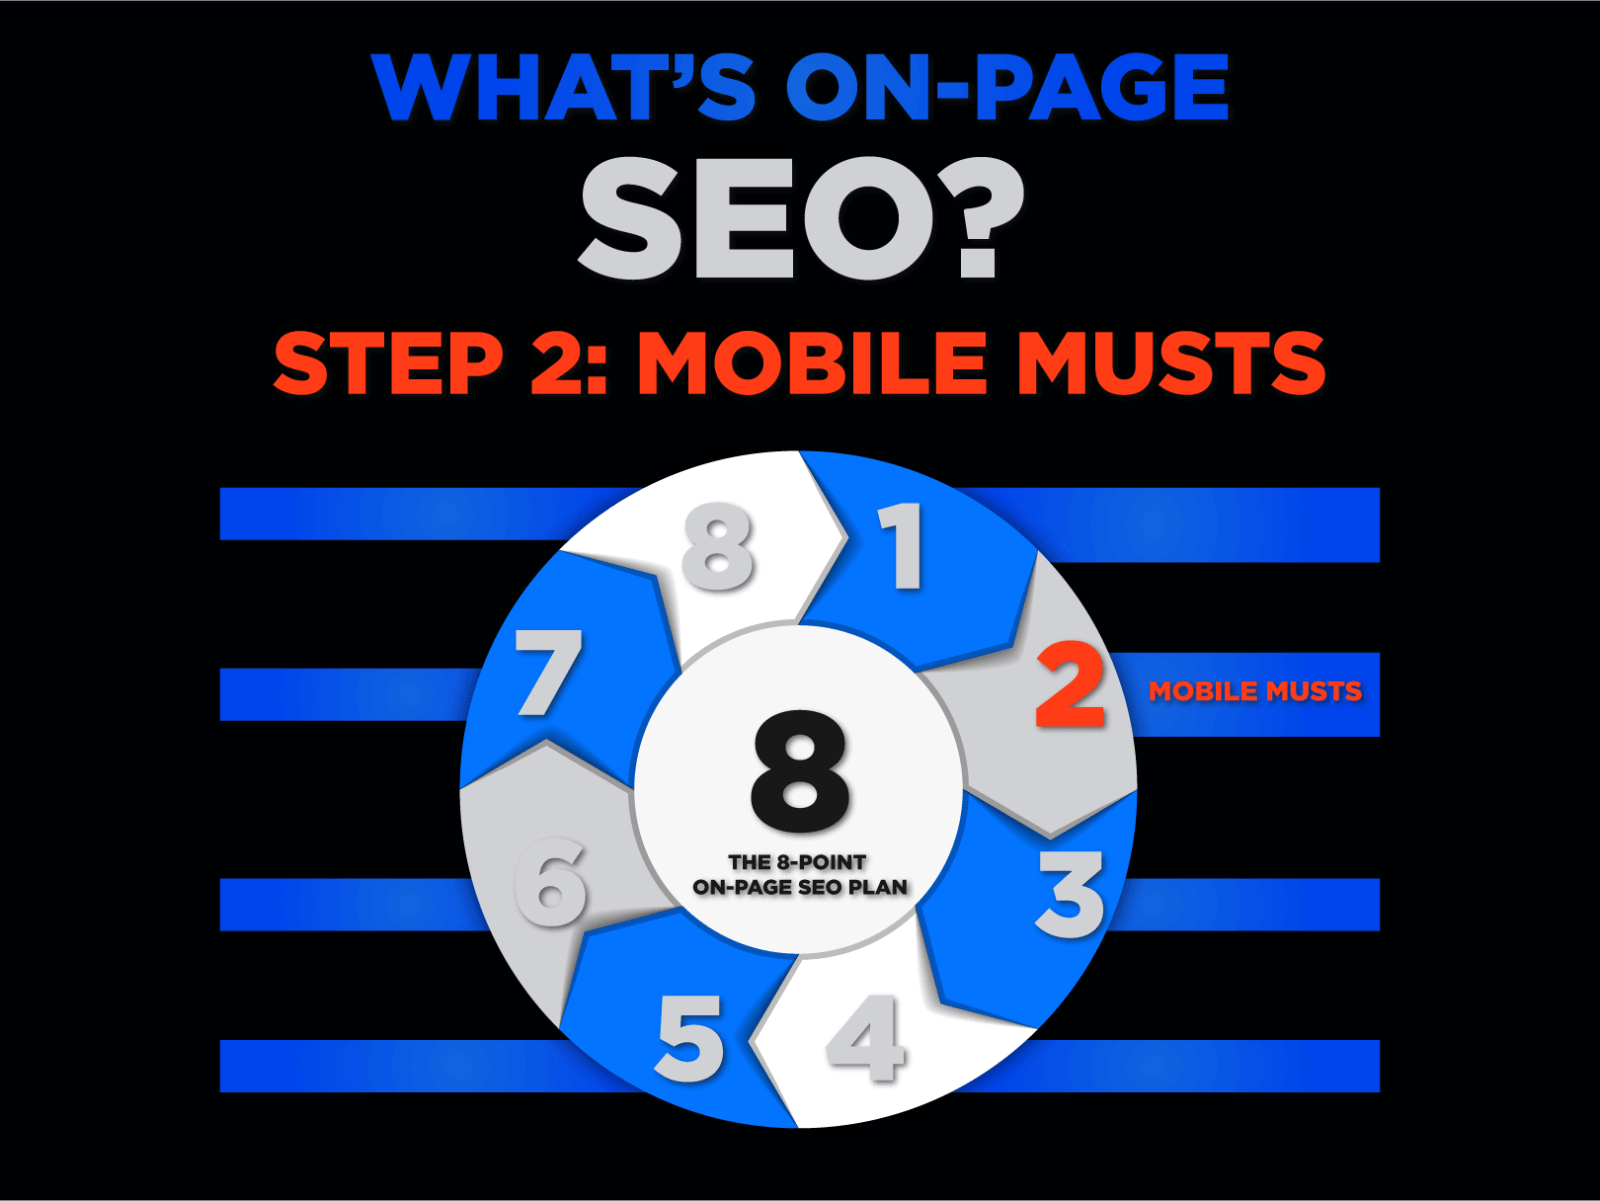 8-Point On-Page SEO Plan, Step 2: Mobile Musts